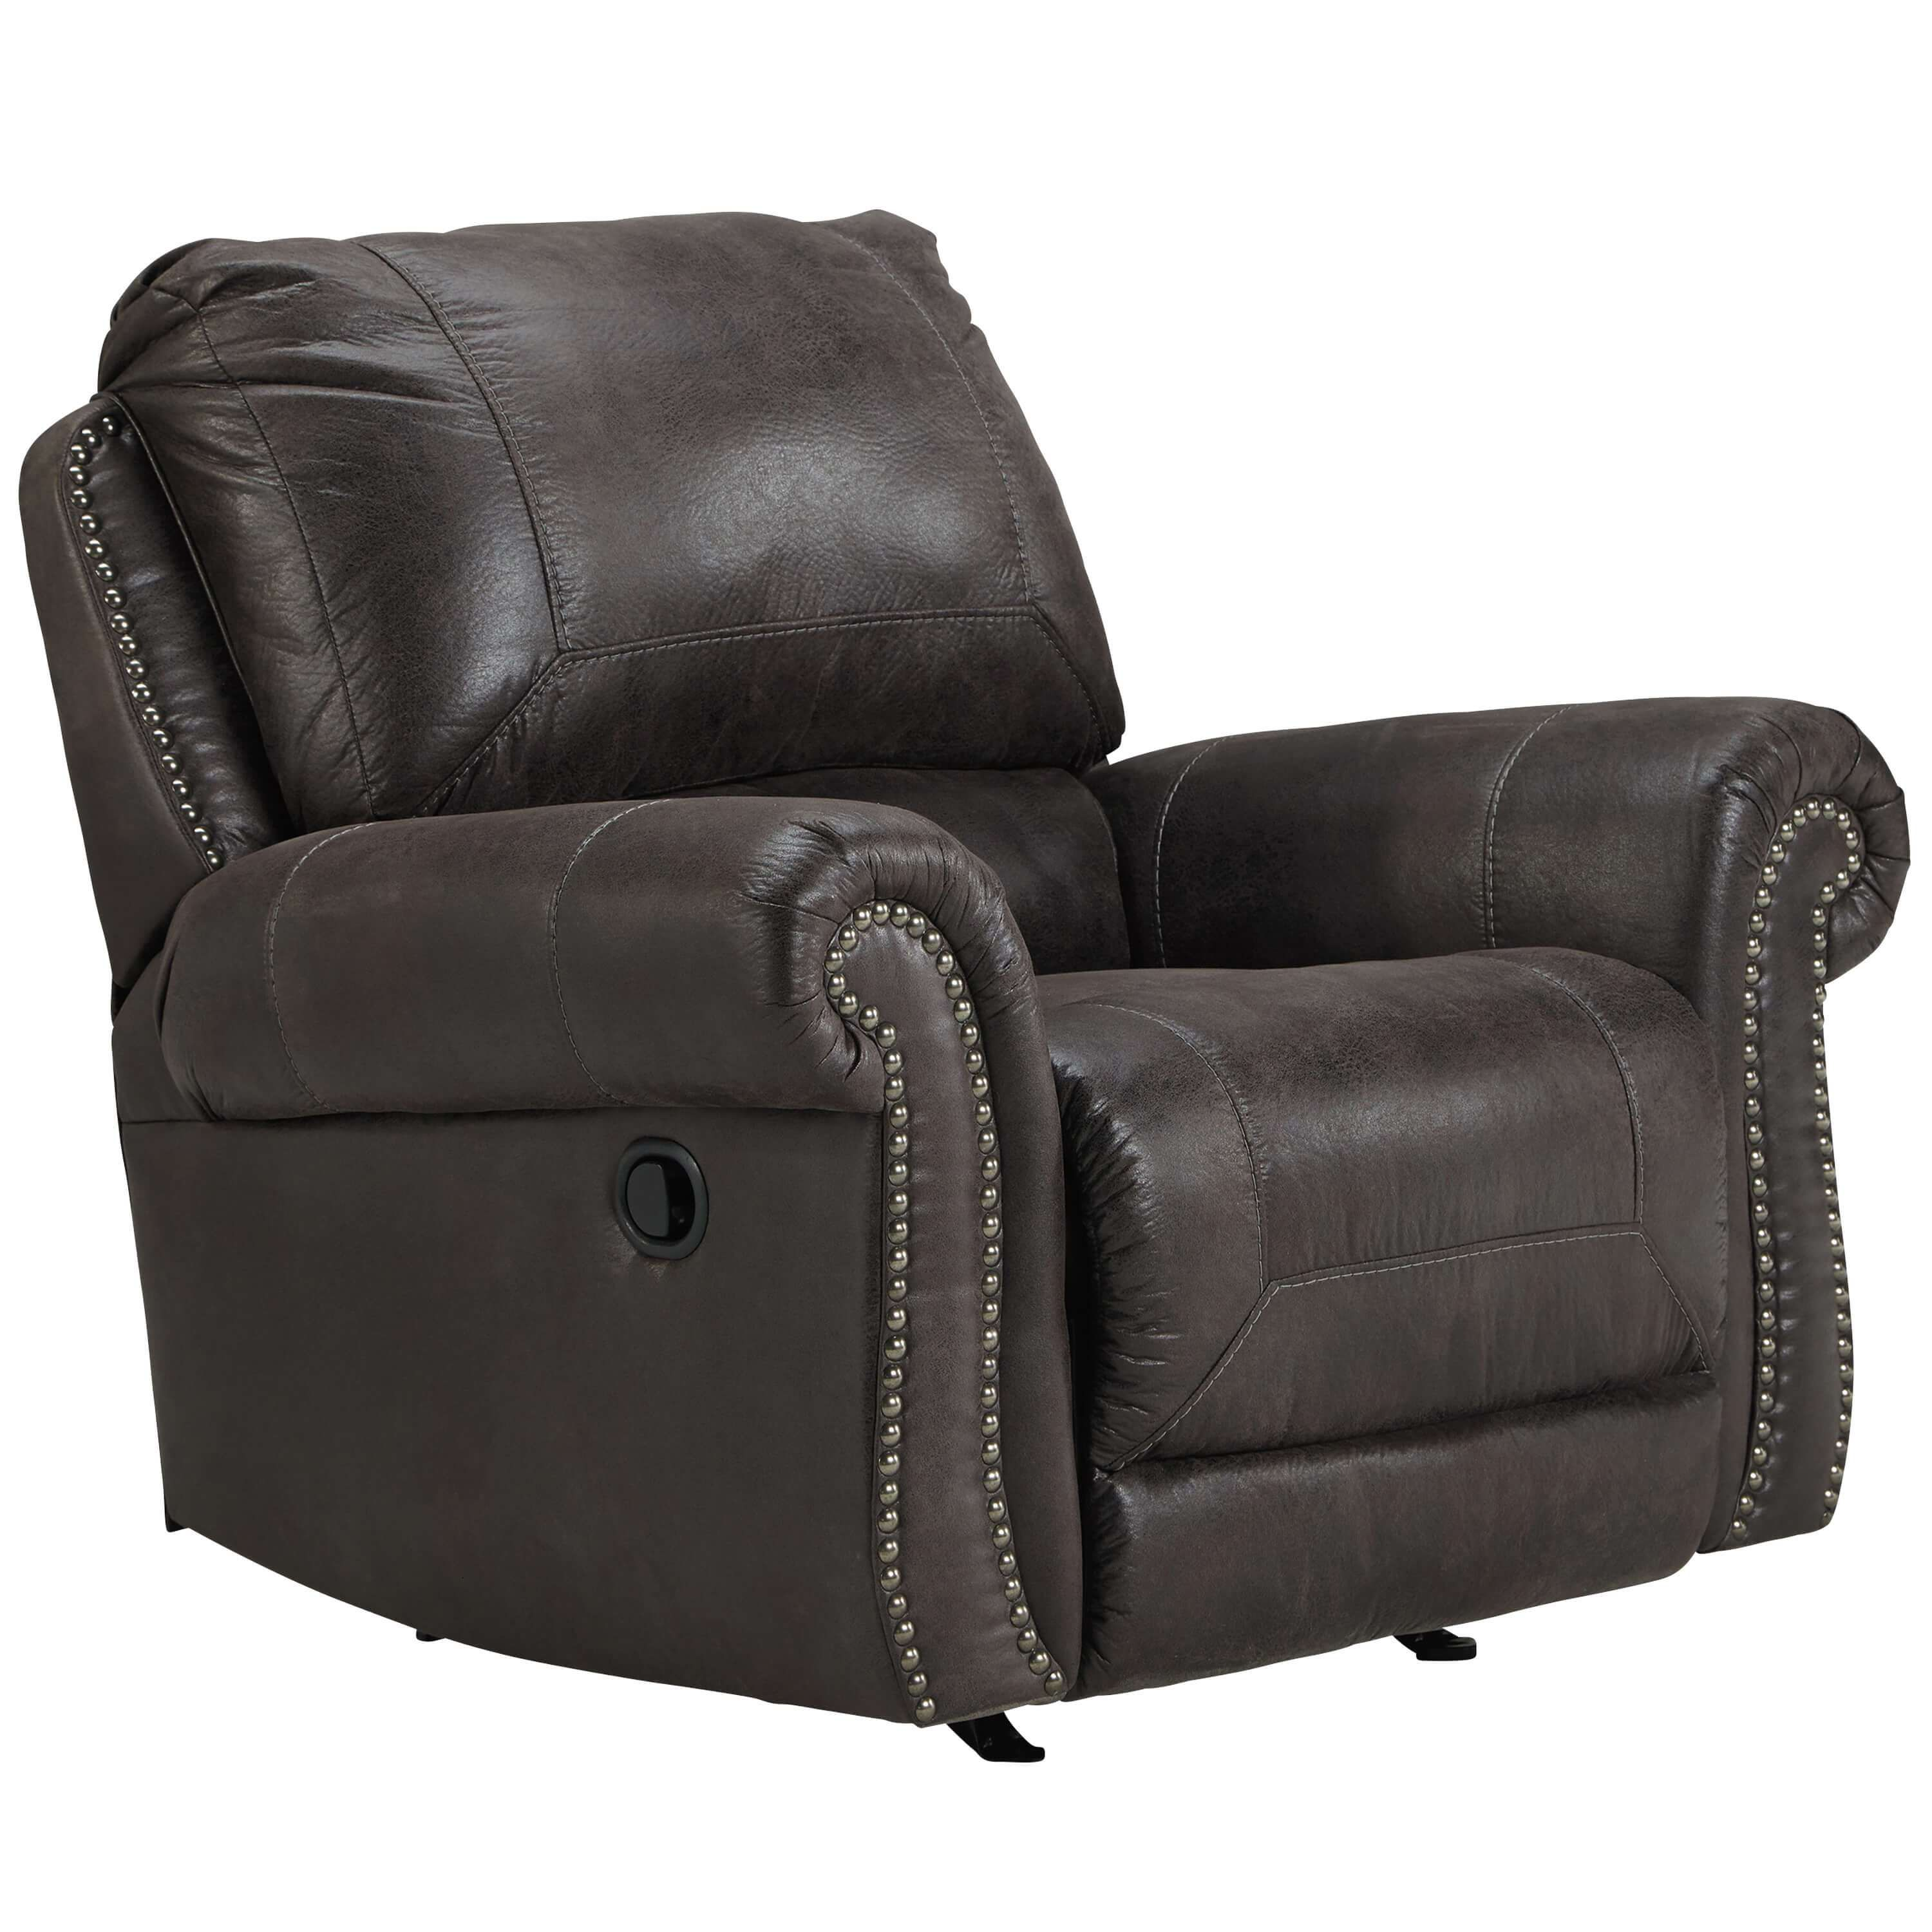 Cozy Leather Rocker Recliner Recliner, Leather recliner